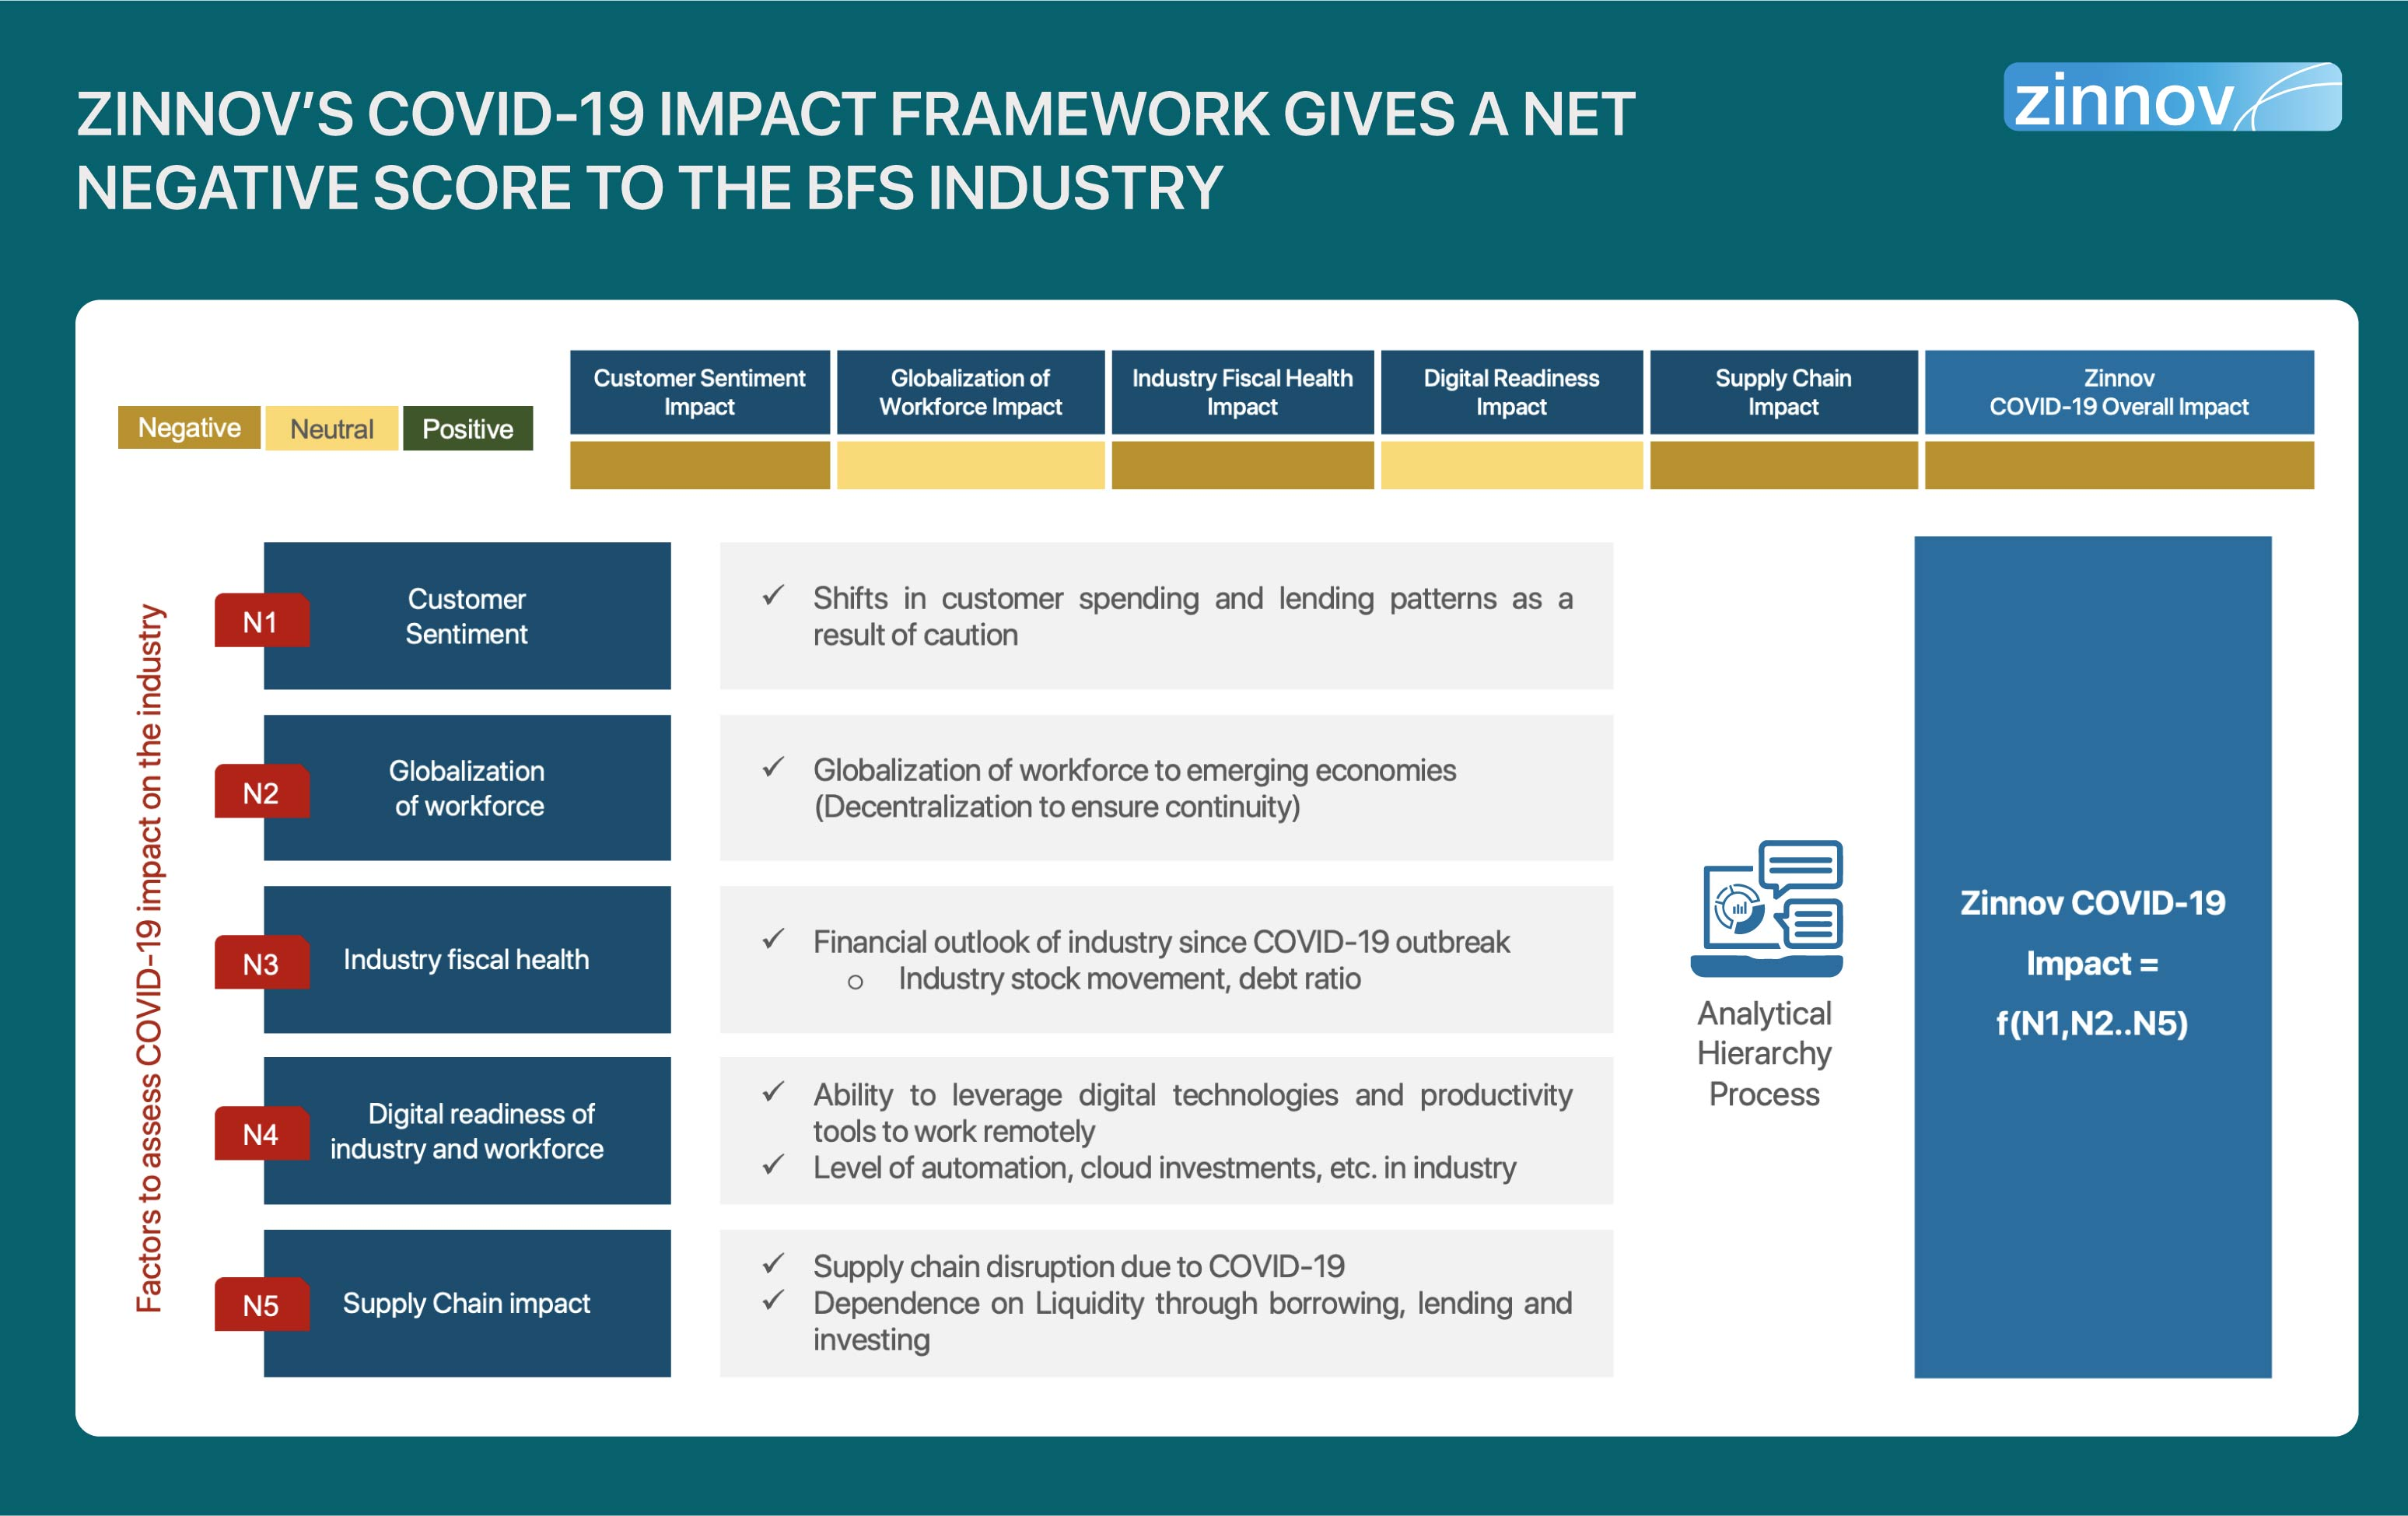 Zinnov's COVID-19 Impact Framework Showing Negative Score of BFS Industry